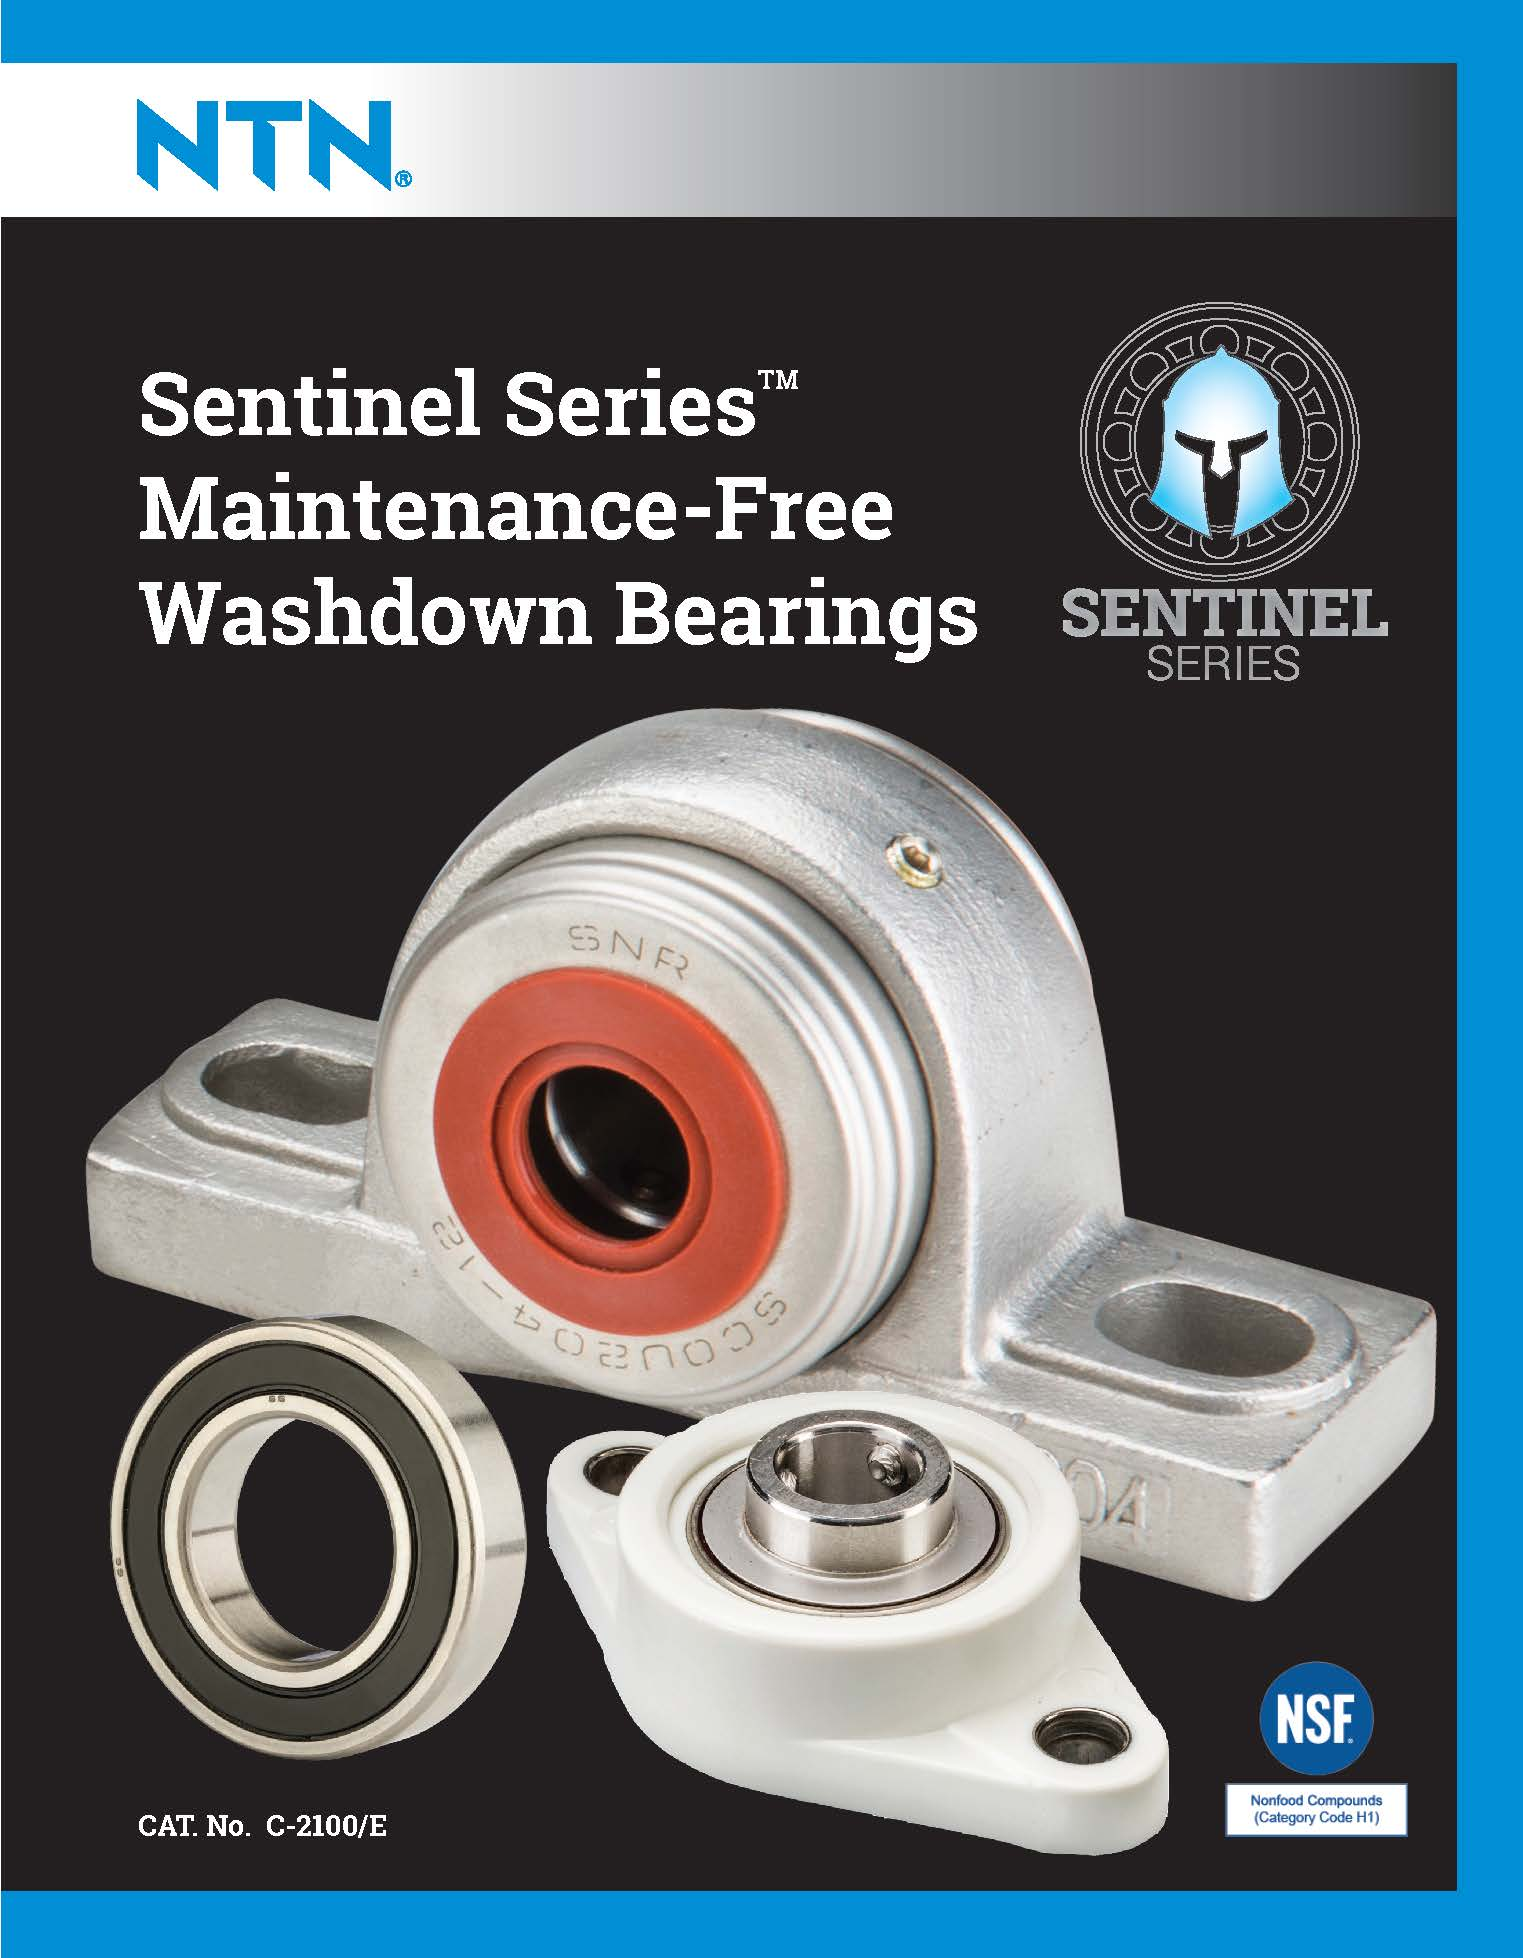 ntn sentinel series catalog cover page 01